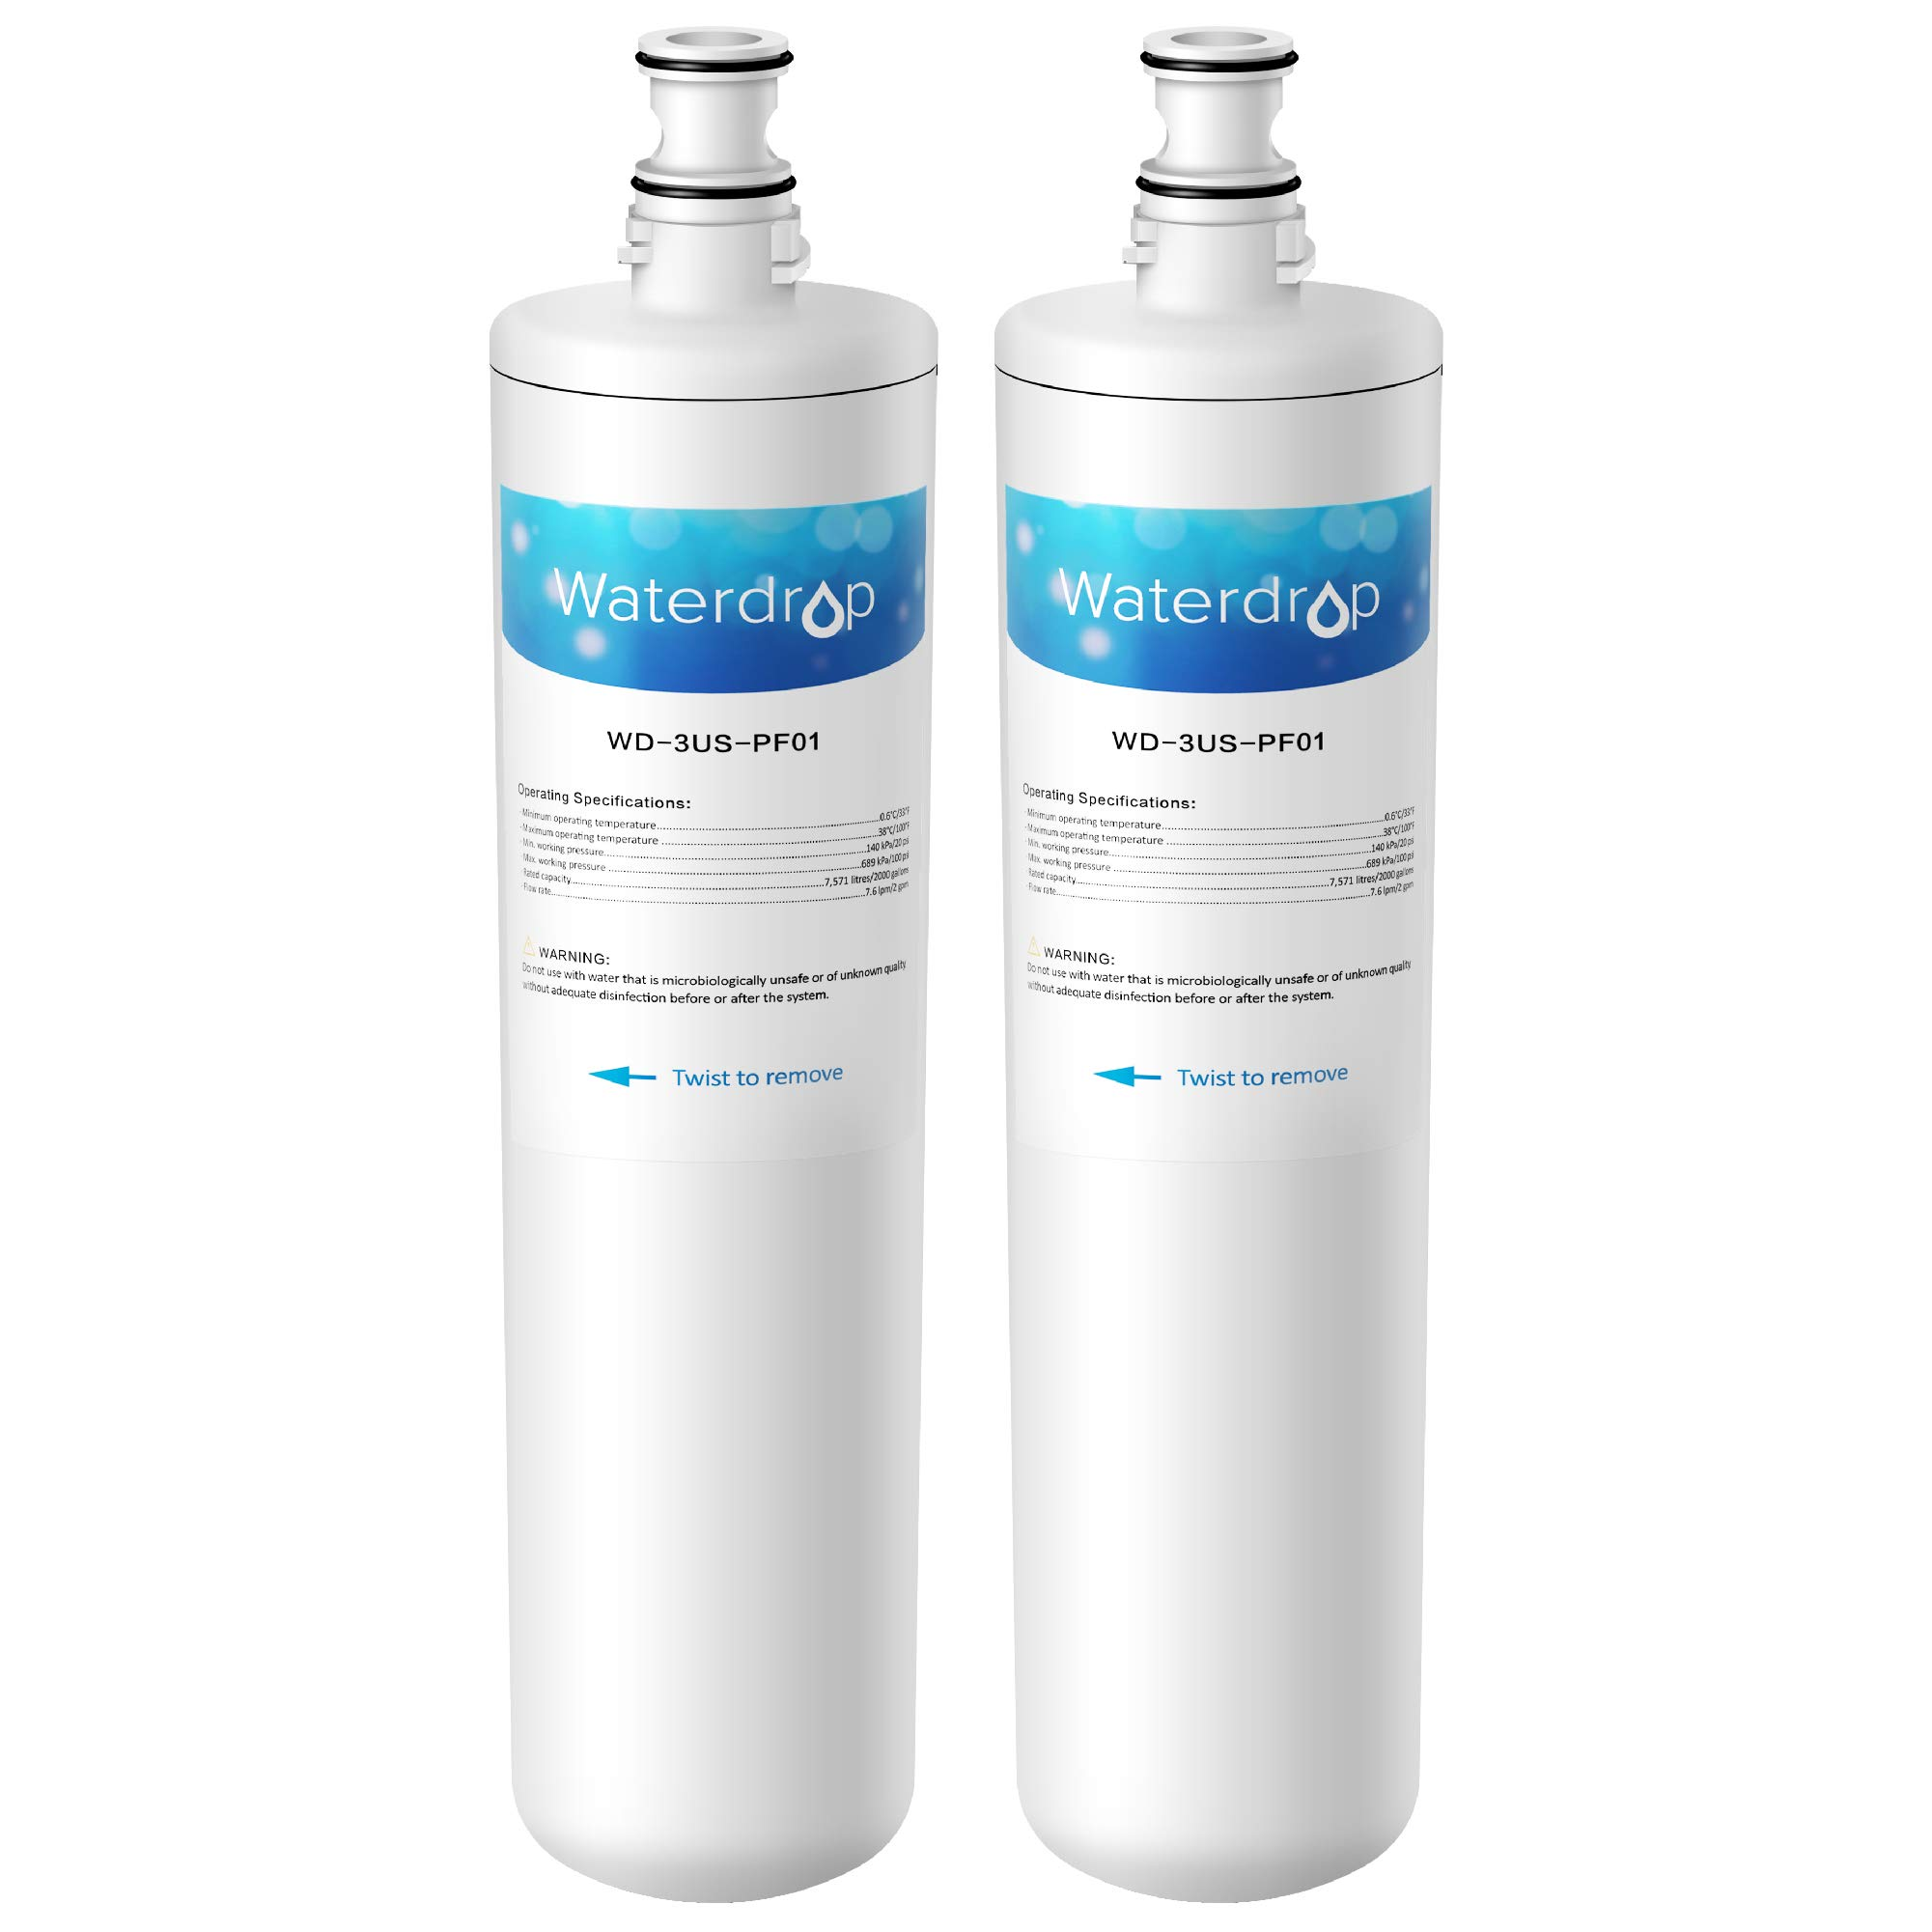 Waterdrop Undersink Water Filter, Compatible Filtrete Advanced 3US-PF01, 3US-MAX-F01H, 3US-PF01H, Manitowoc K-00337, K-00338, K00337, K00338, Delta RP78702, Pack of 2 by Waterdrop